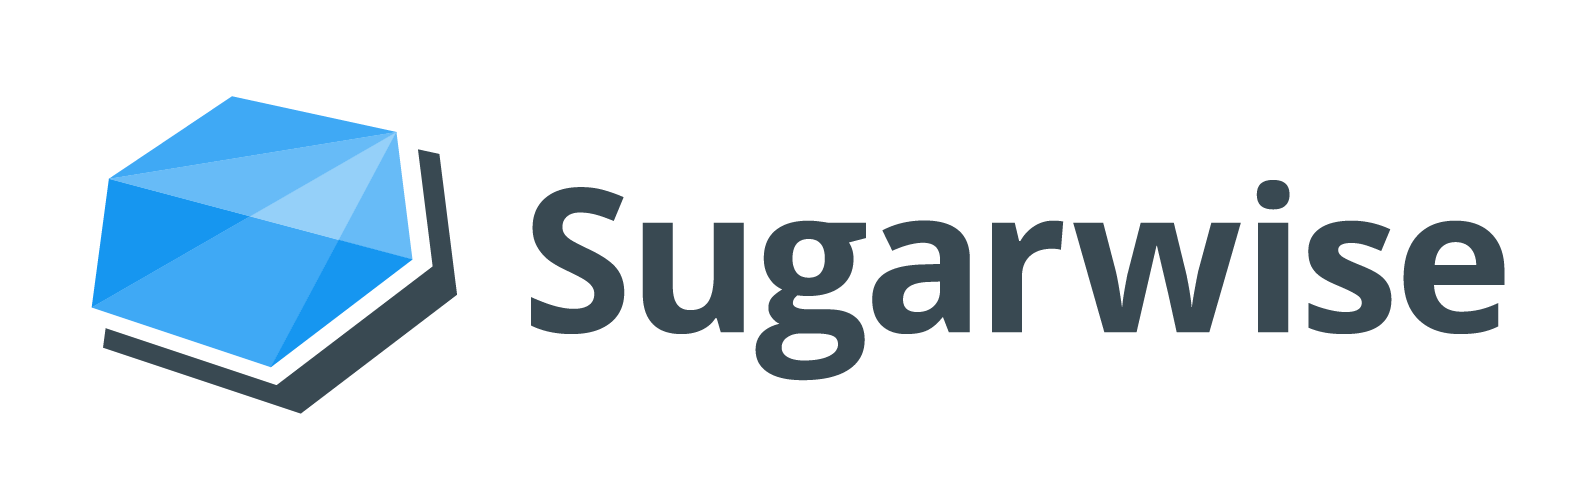 Sugarwise transparent gray lettering